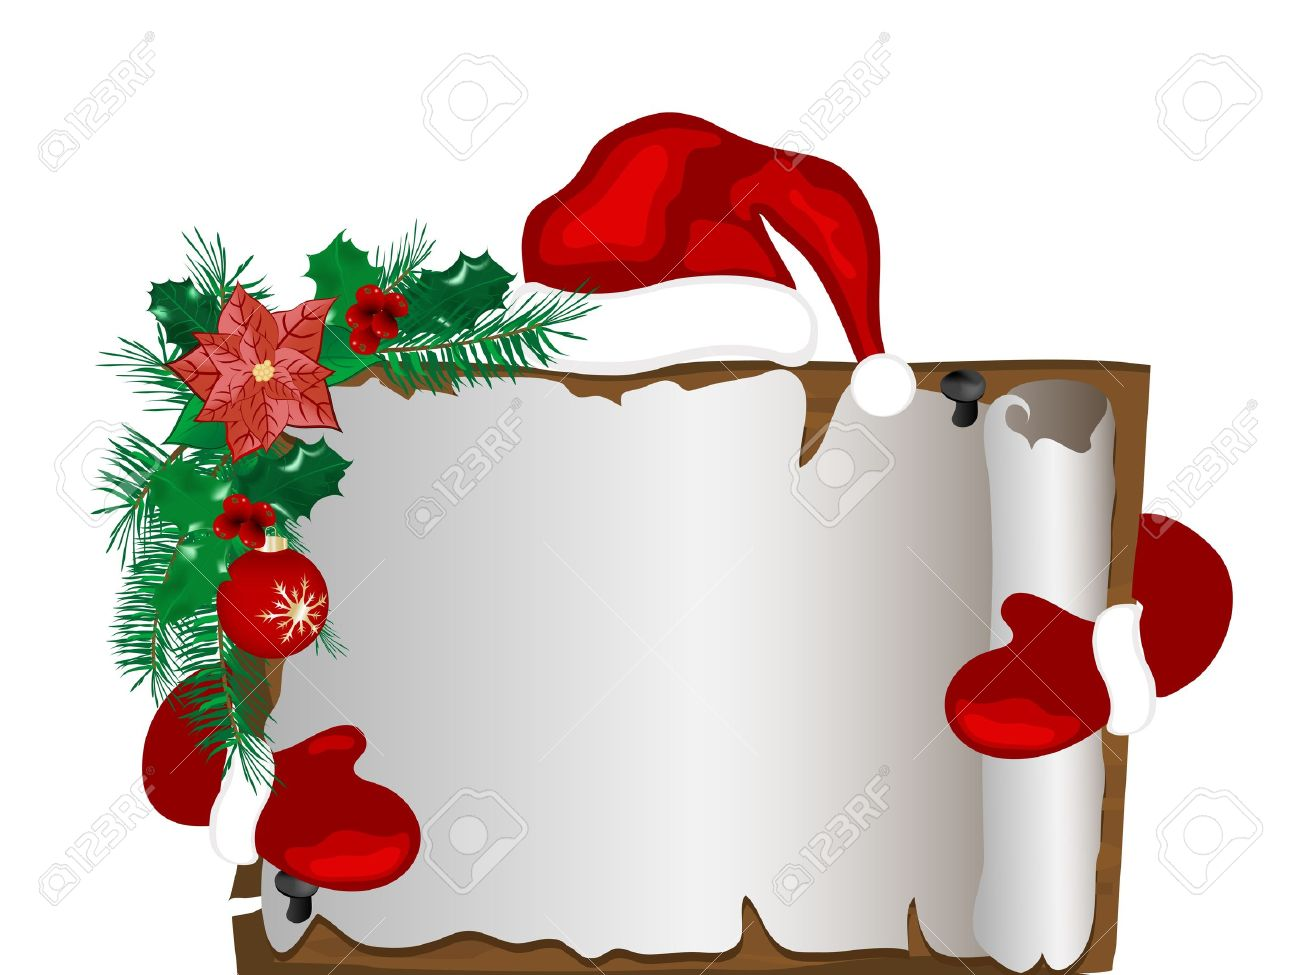 Christmas parchment with Santa's hat and gloves Stock Vector - 15660890